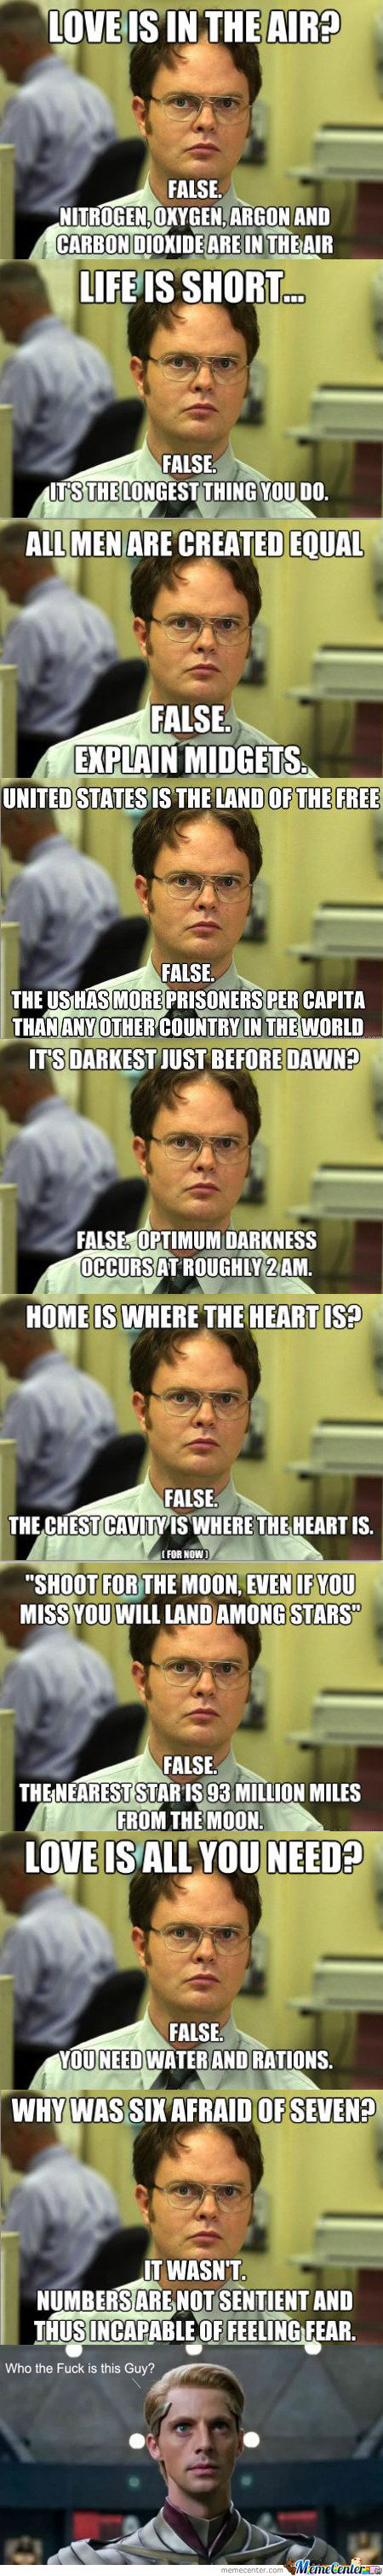 Dwight Schrute Knows Best